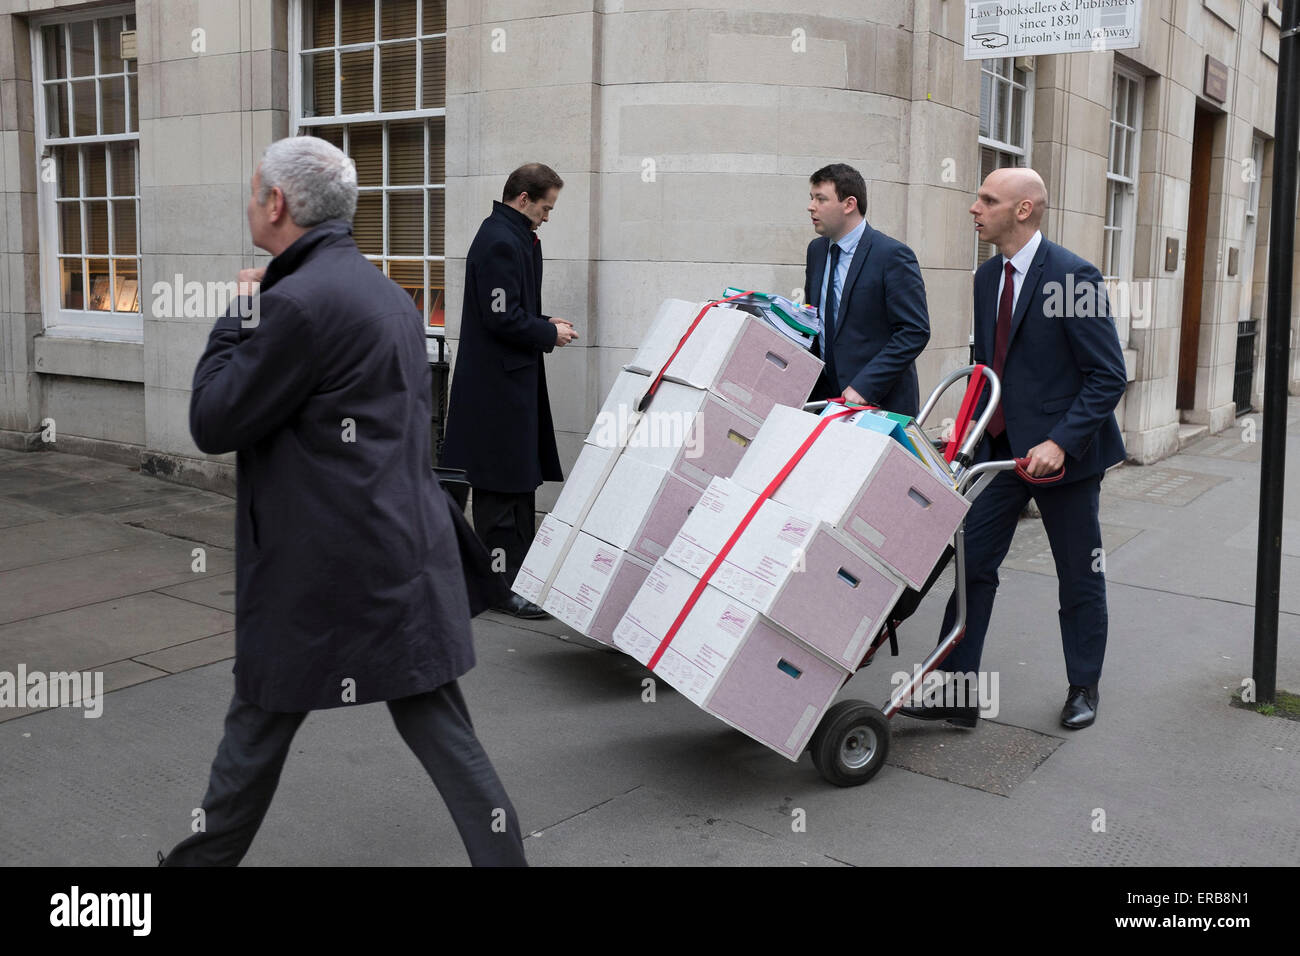 Two men pushing legal papers along Fleet Street towards the Inns of Court in London, UK. - Stock Image